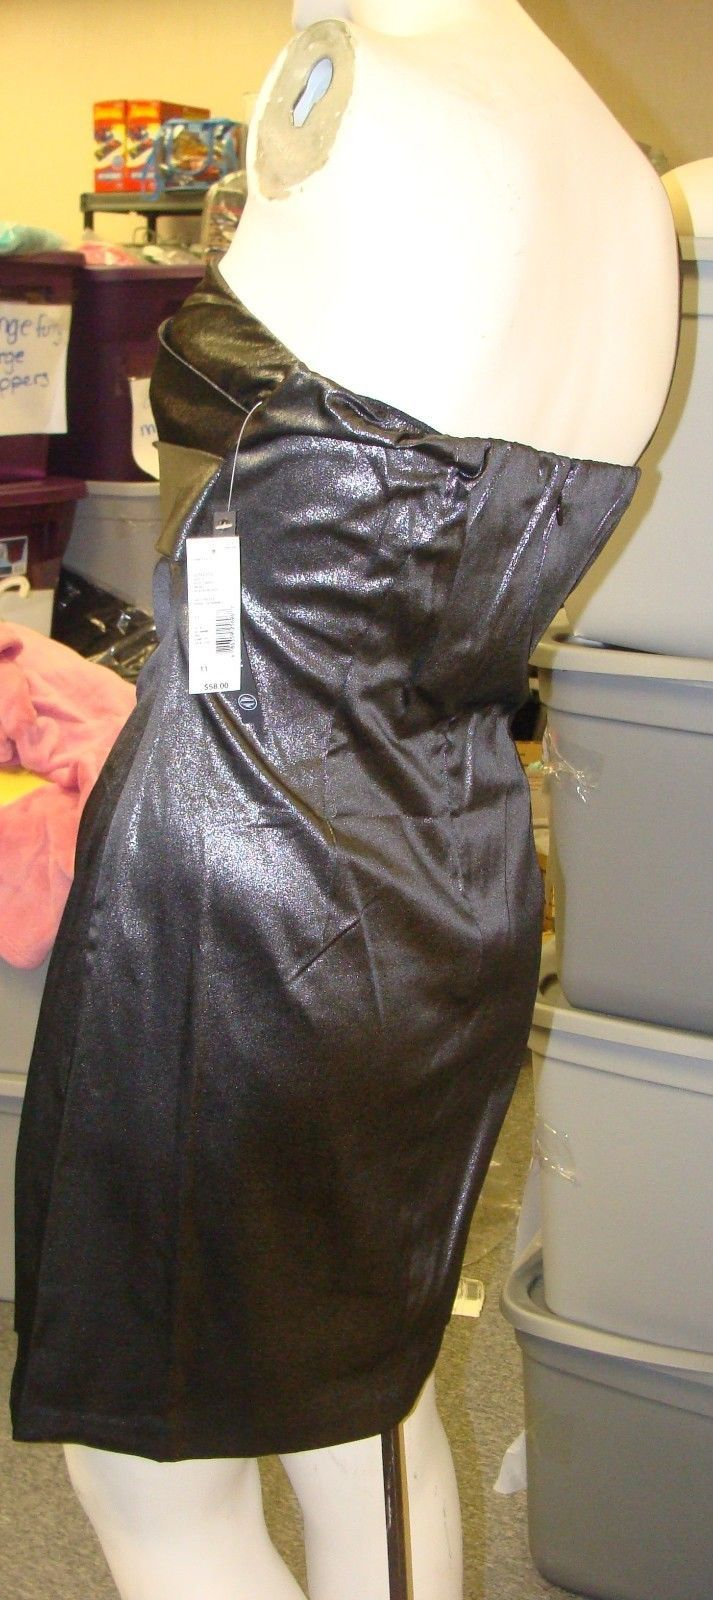 NEW WOMENS JUNIORS JRs SIZE 9 FAUX LEATHER BLACK SILVER METALLIC ONE STRAP DRESS